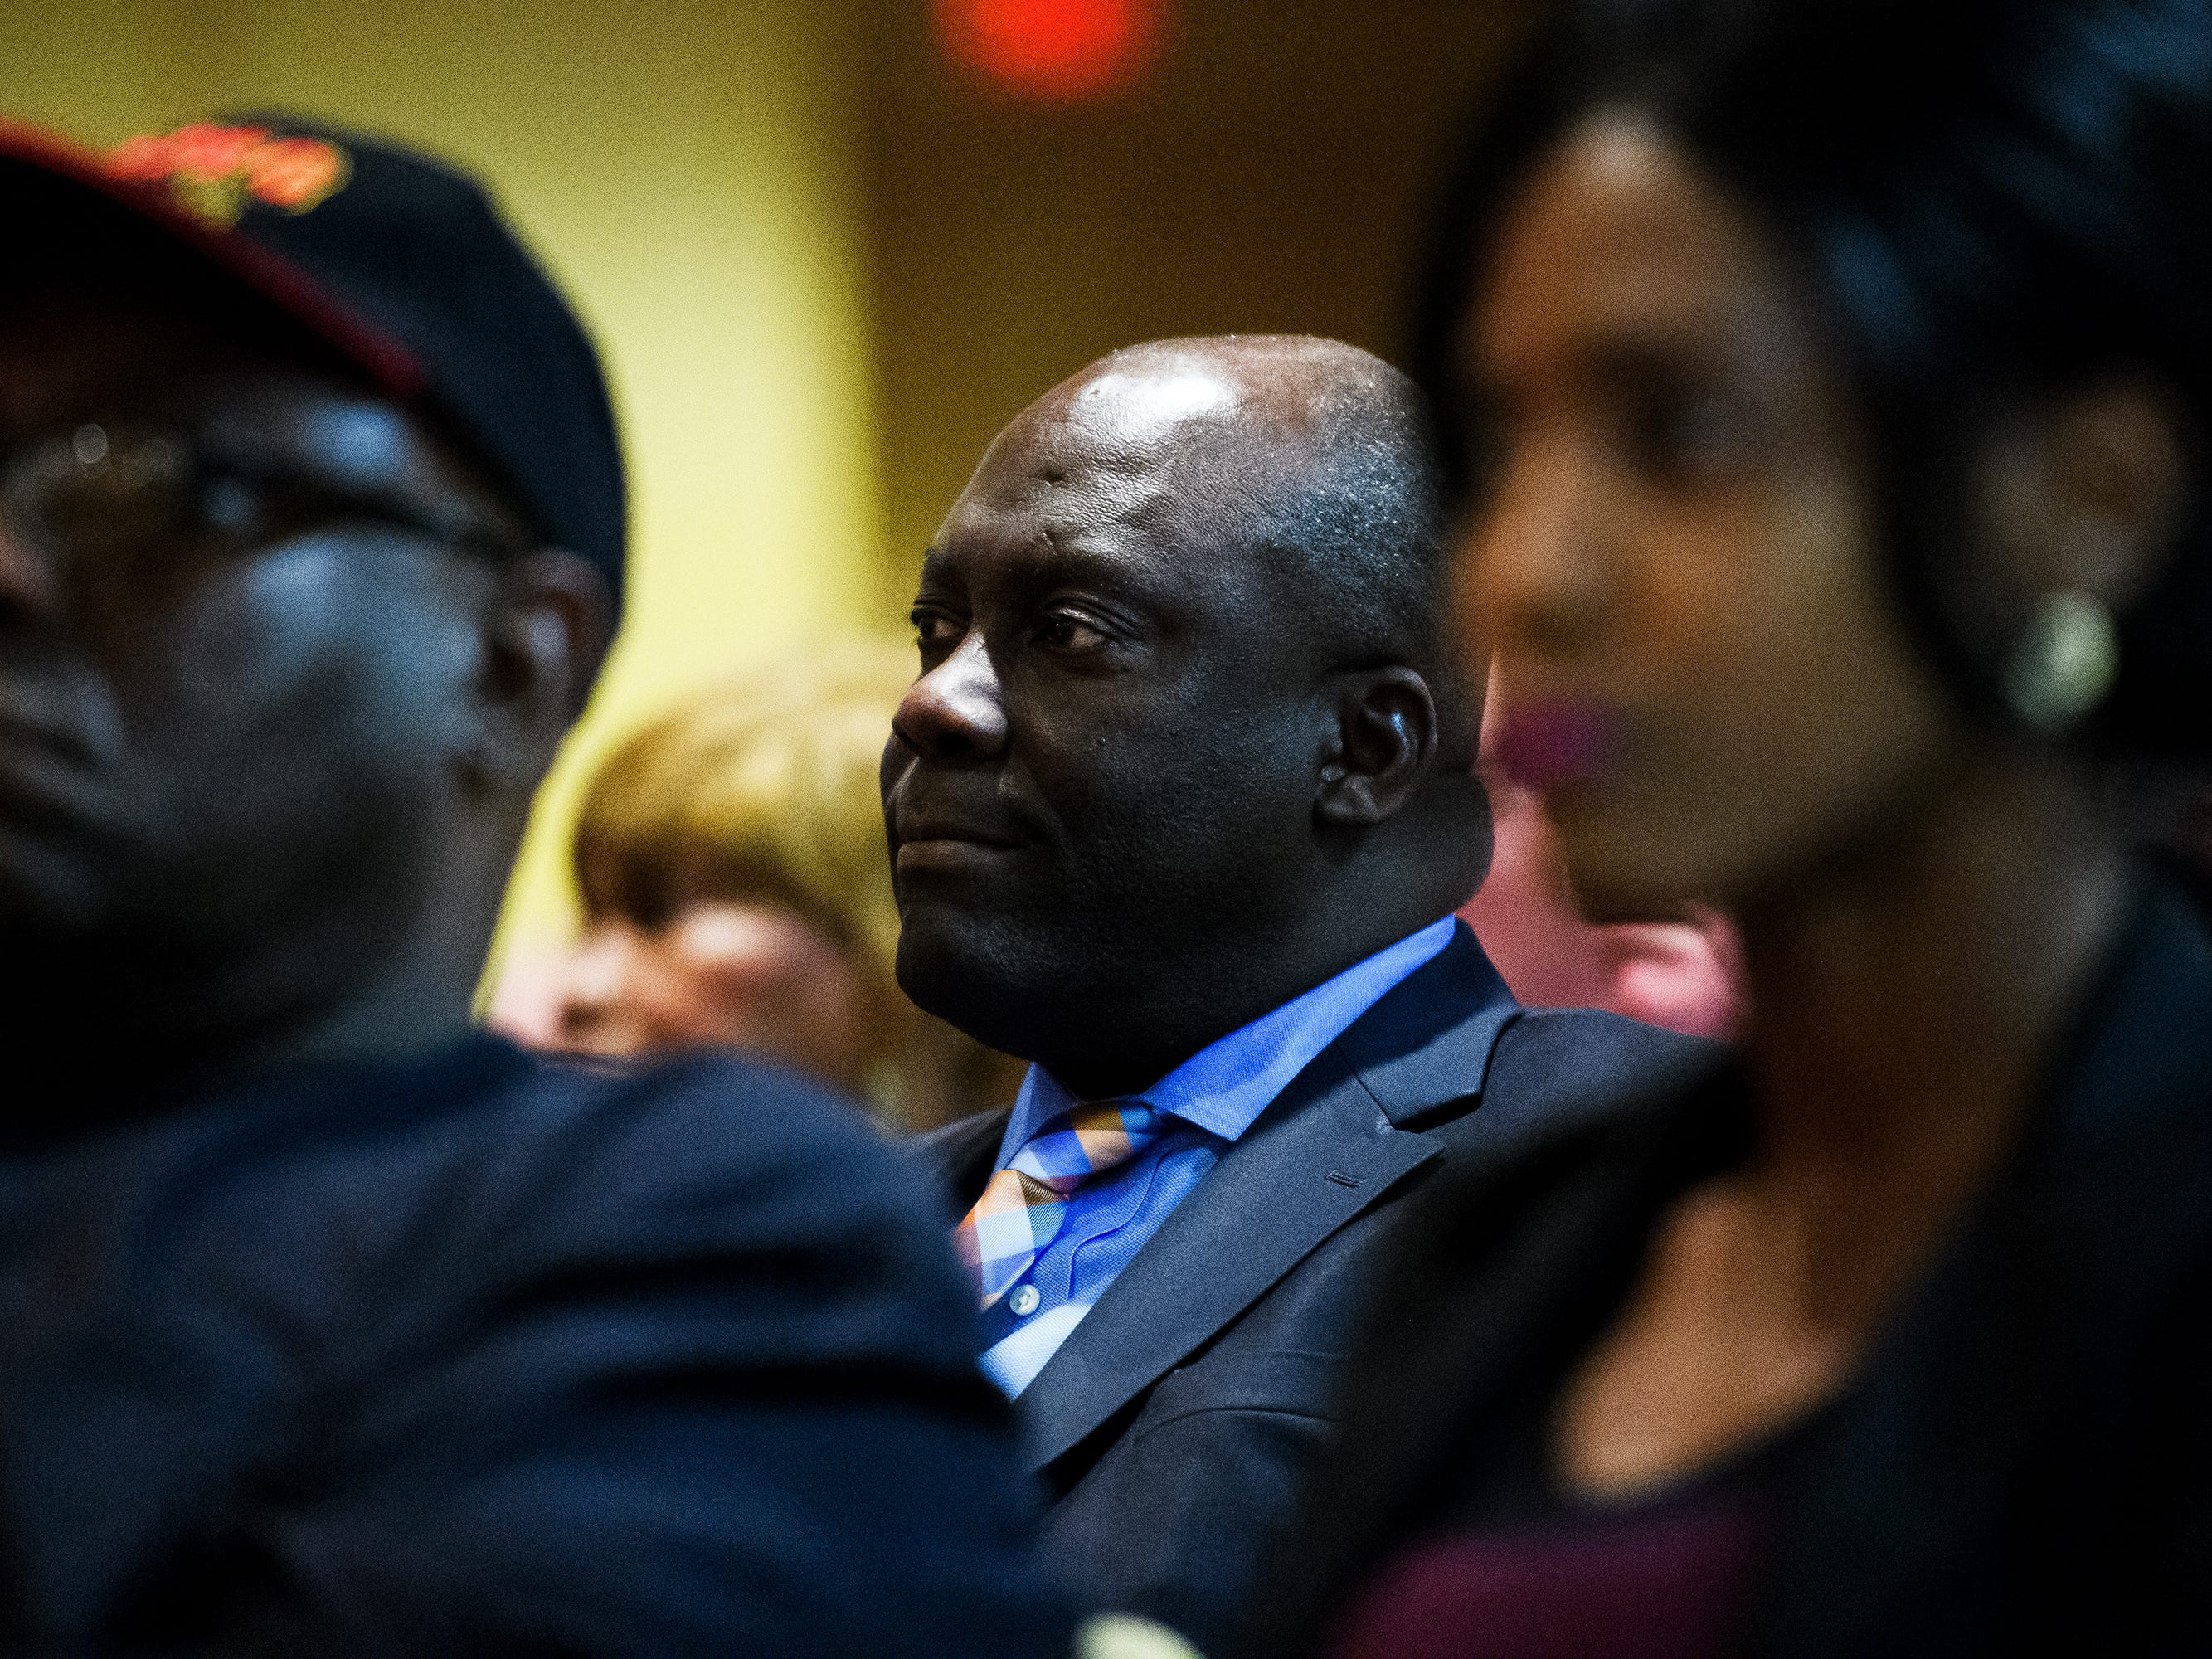 Duke Energy executive Kodwo Ghartey-Tagoe listens as Greenville County residents voice their concerns over a proposed Duke Energy rate increase during a public hearing Thursday, March 14, 2019 at Greenville County Square.